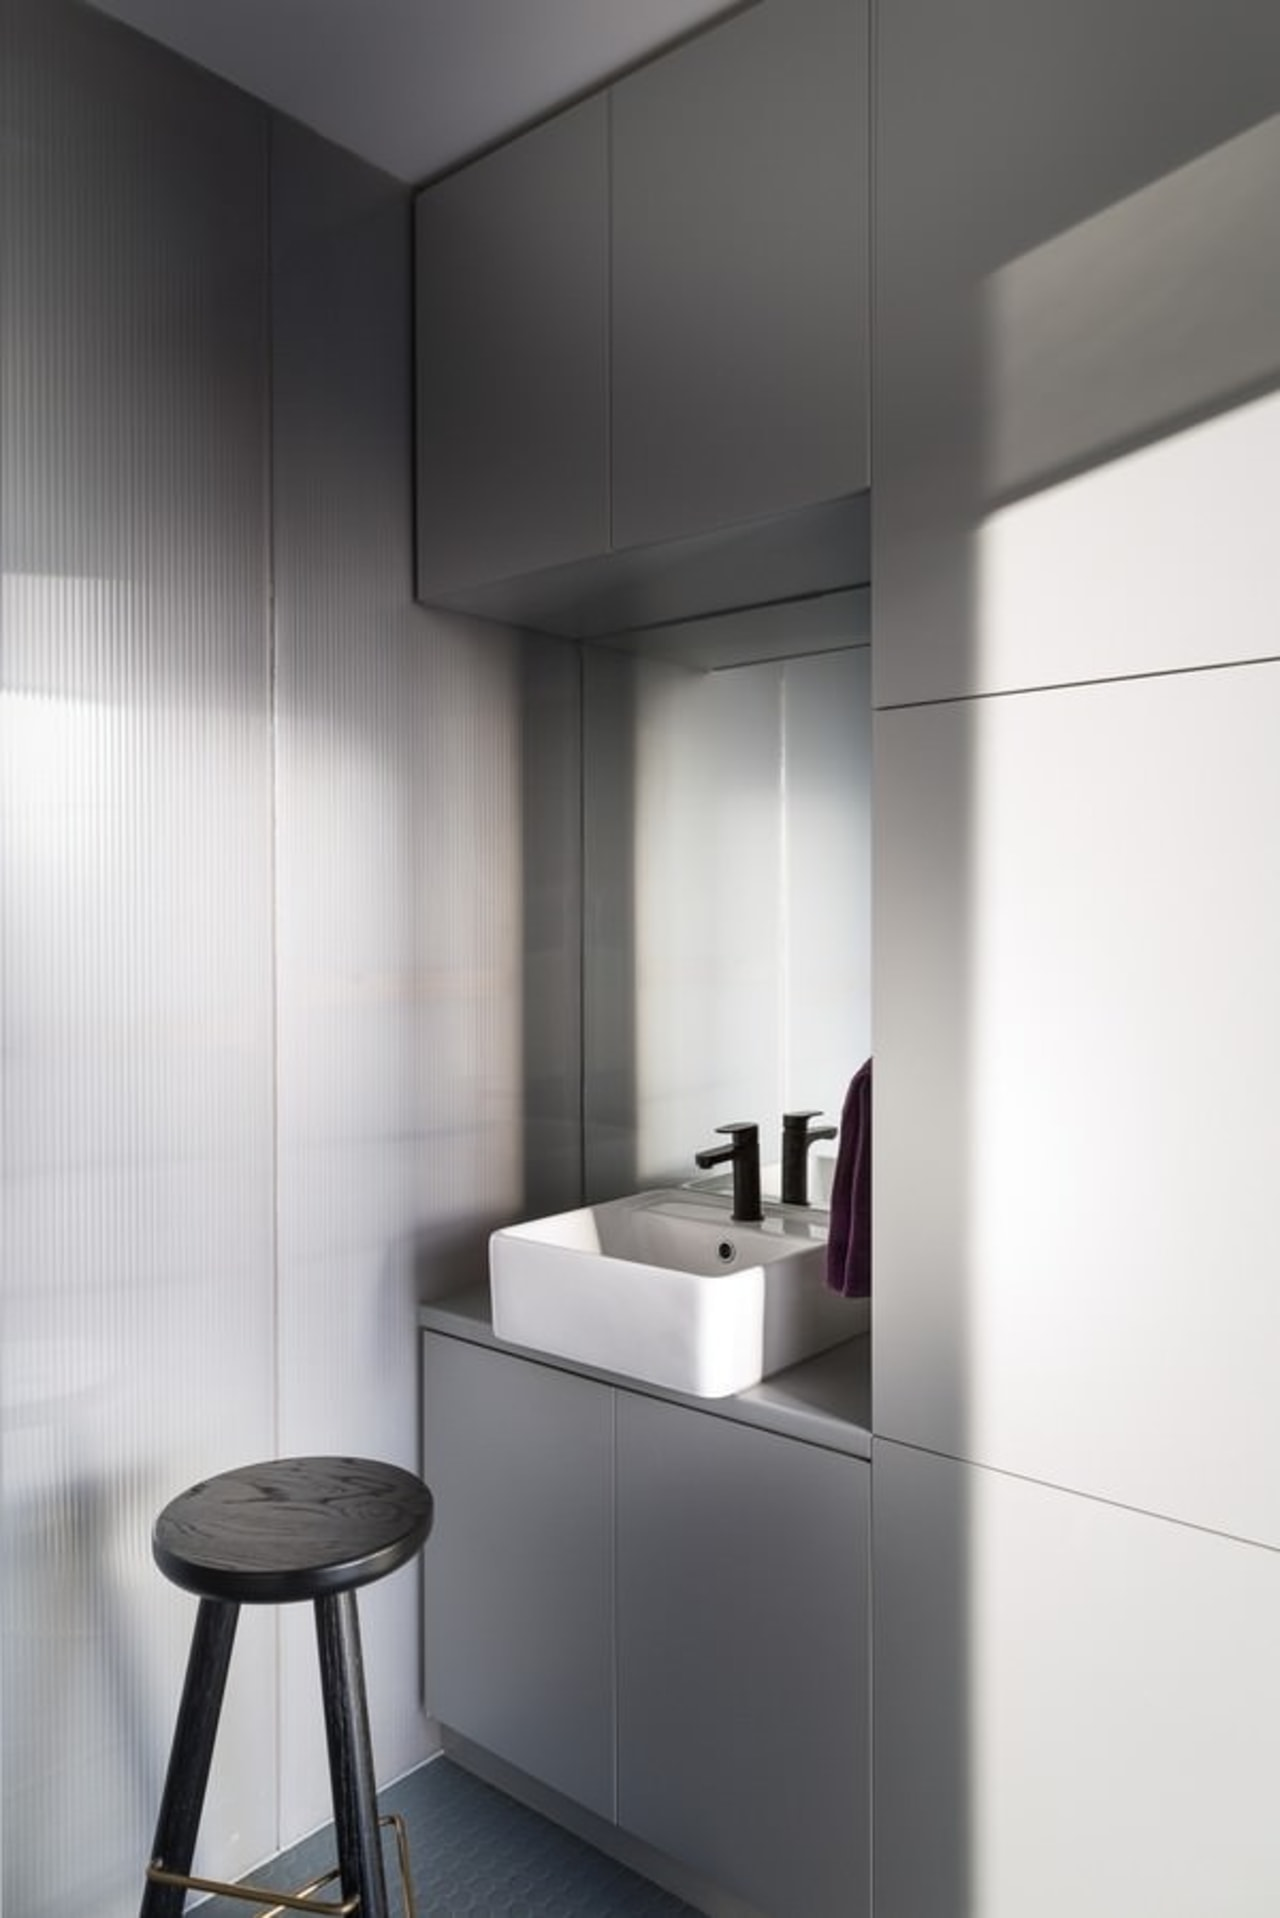 This tiny bathroom is distinctly modern and features floor, interior design, product design, tap, white, gray